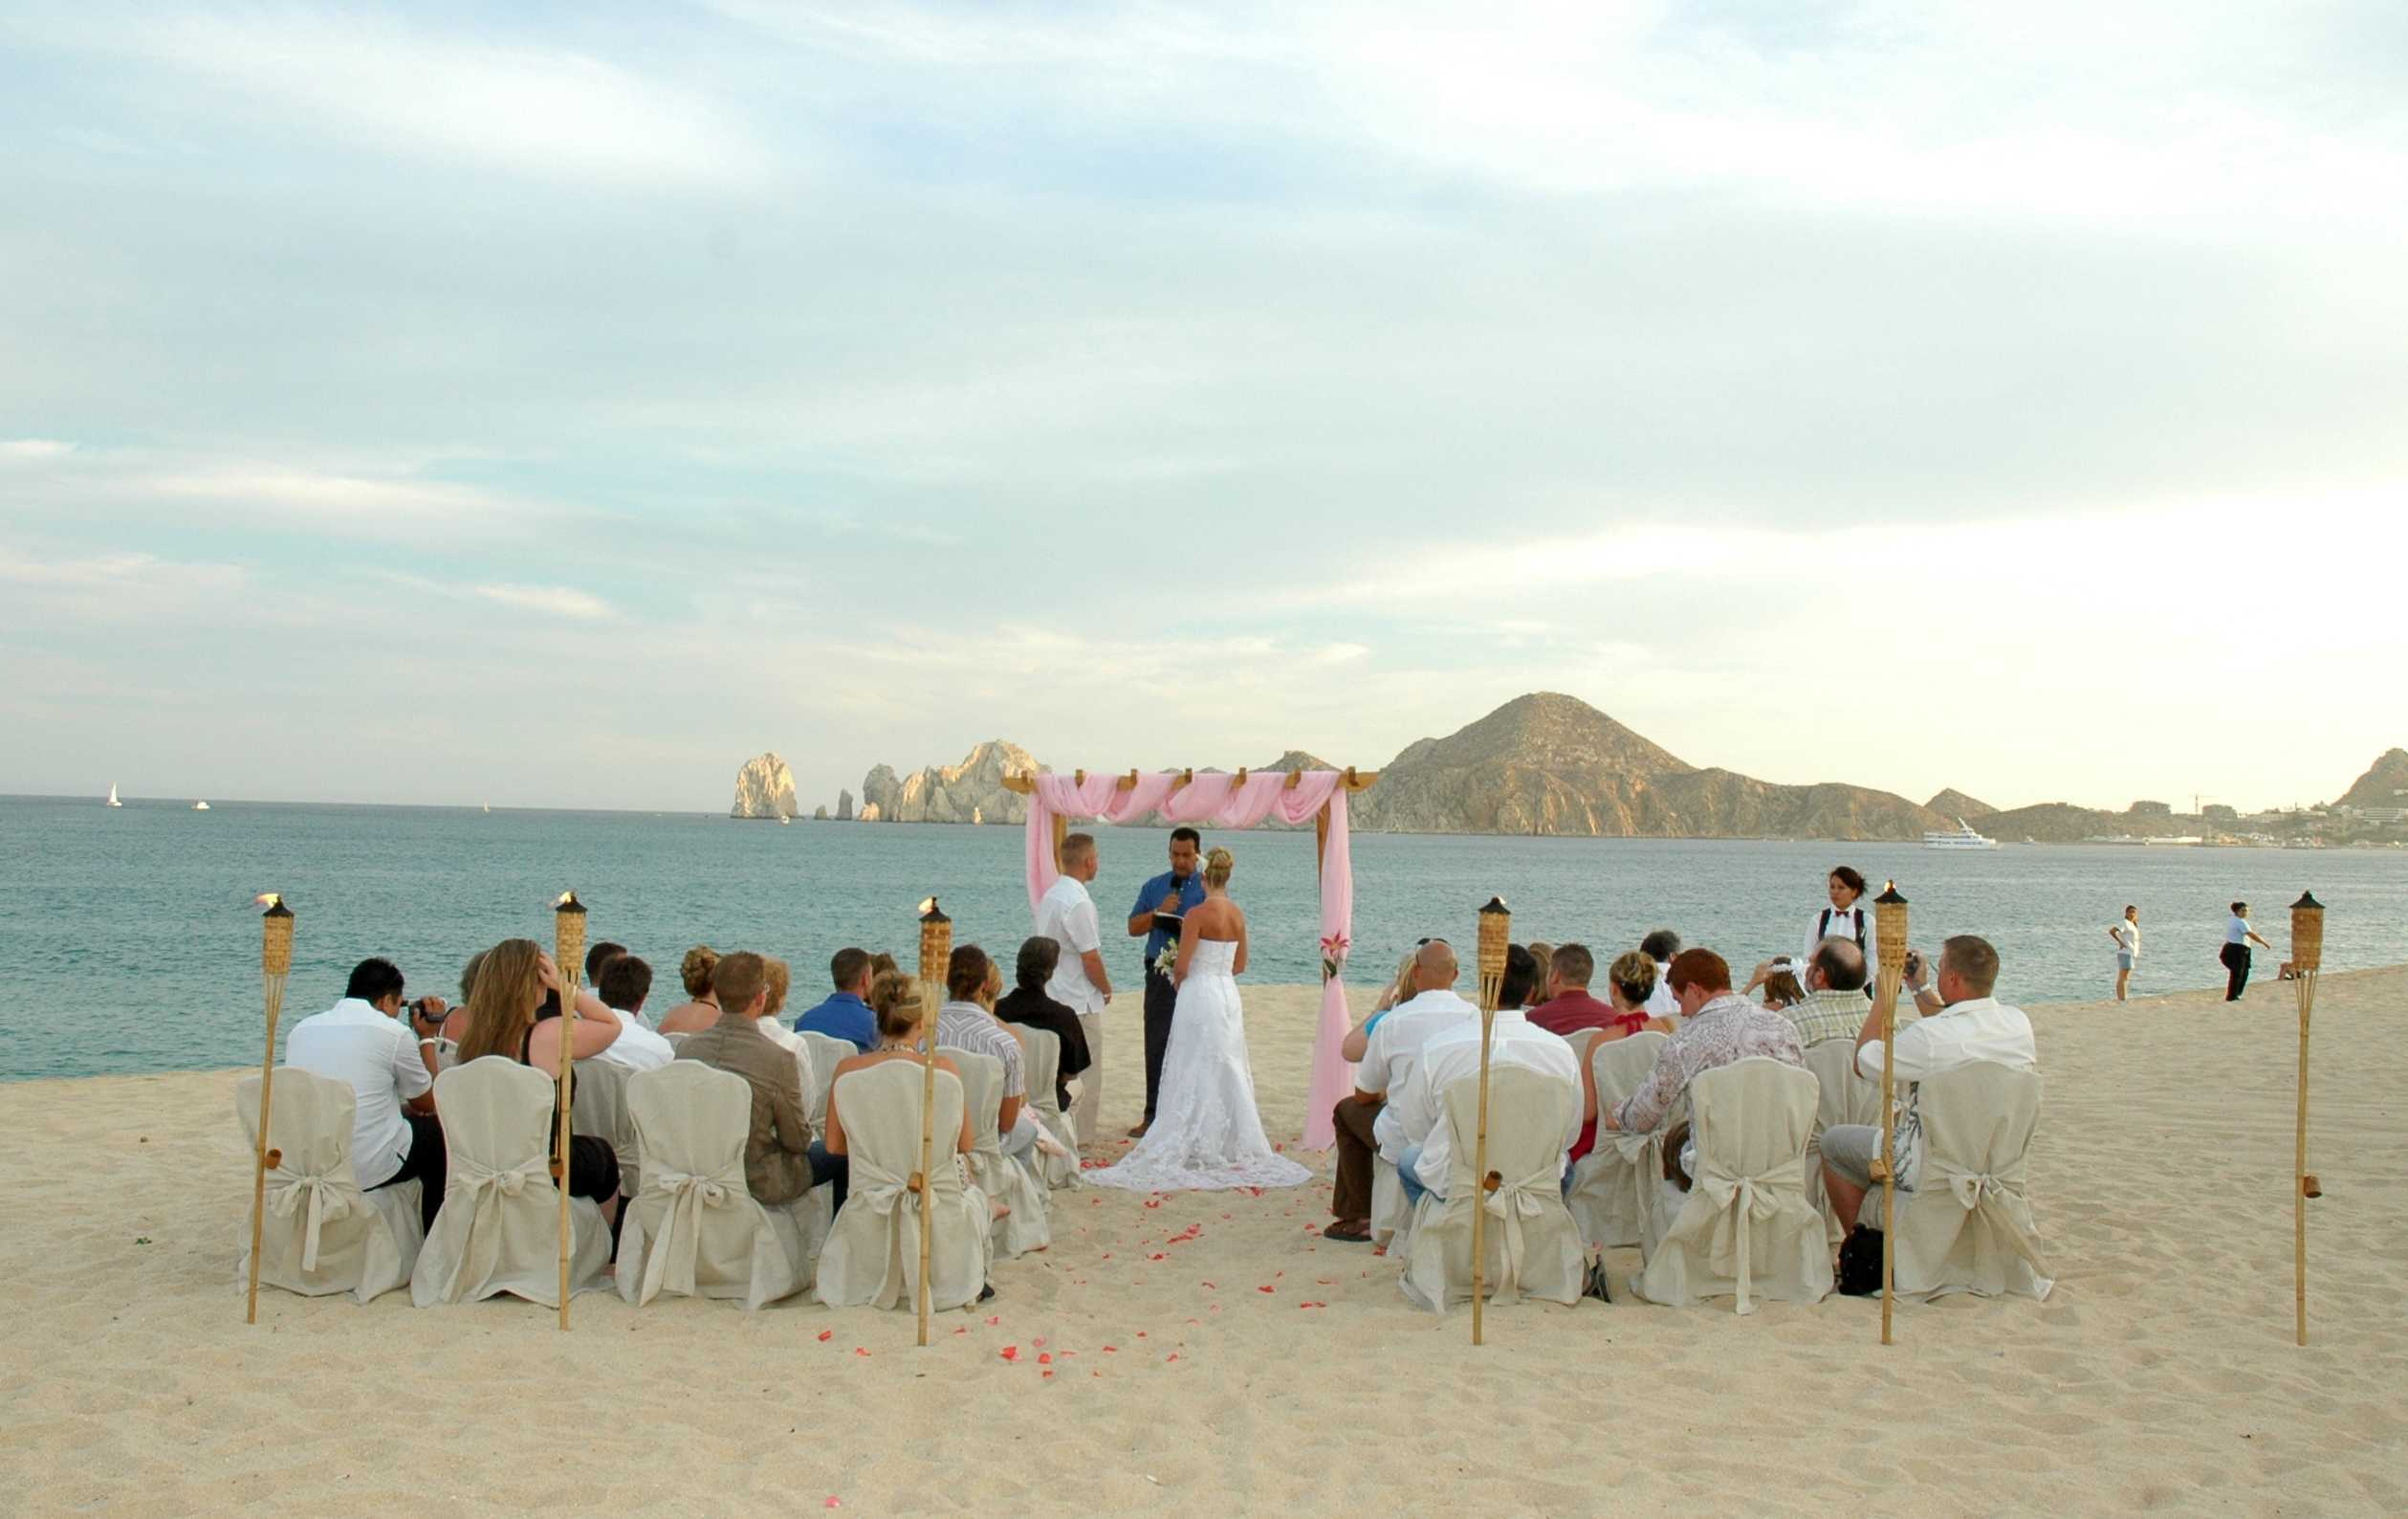 Ceremony, Flowers & Decor, Destinations, Mexico, Beach, Beach Wedding Flowers & Decor, Wedding, Destination, All about honeymoons